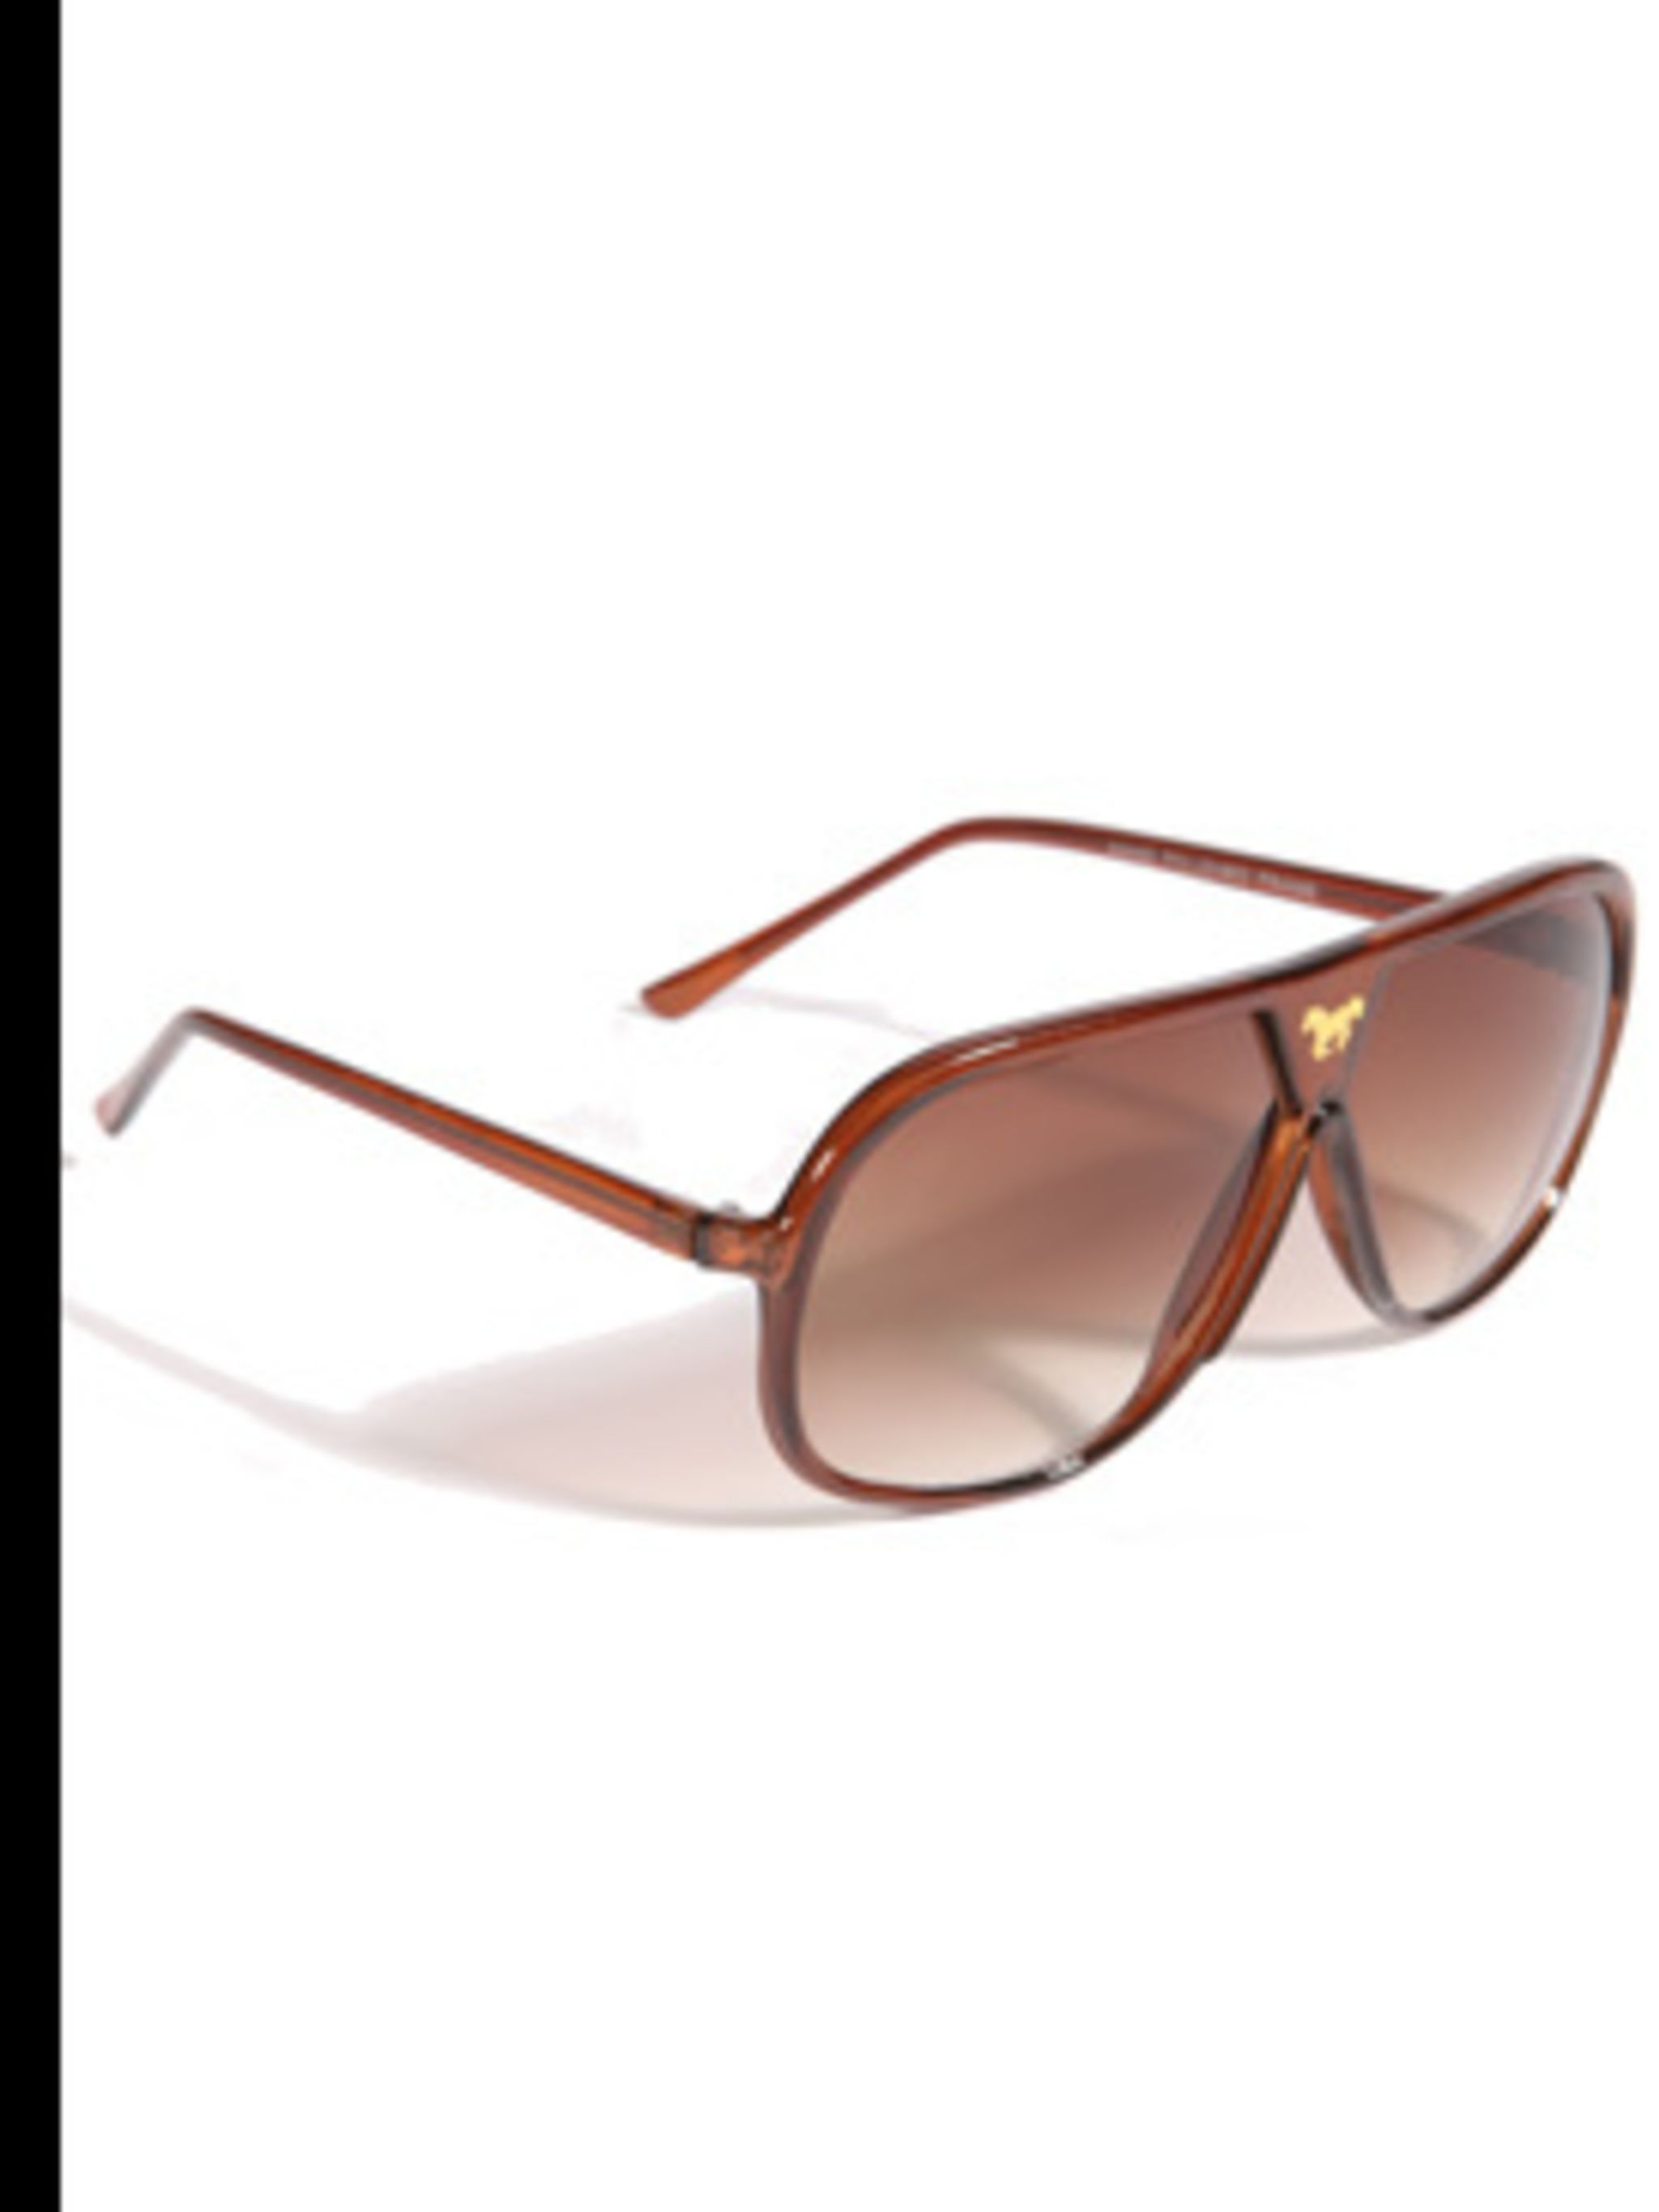 "<p>Aviators, £16, by <a href=""http://www.urbanoutfitters.co.uk/Accessories/Sunglasses/icat/wsunglasses&bklist=icat,5,shop,womens,womensaccessories,wsunglasses"">Urban Outfitters</a></p>"